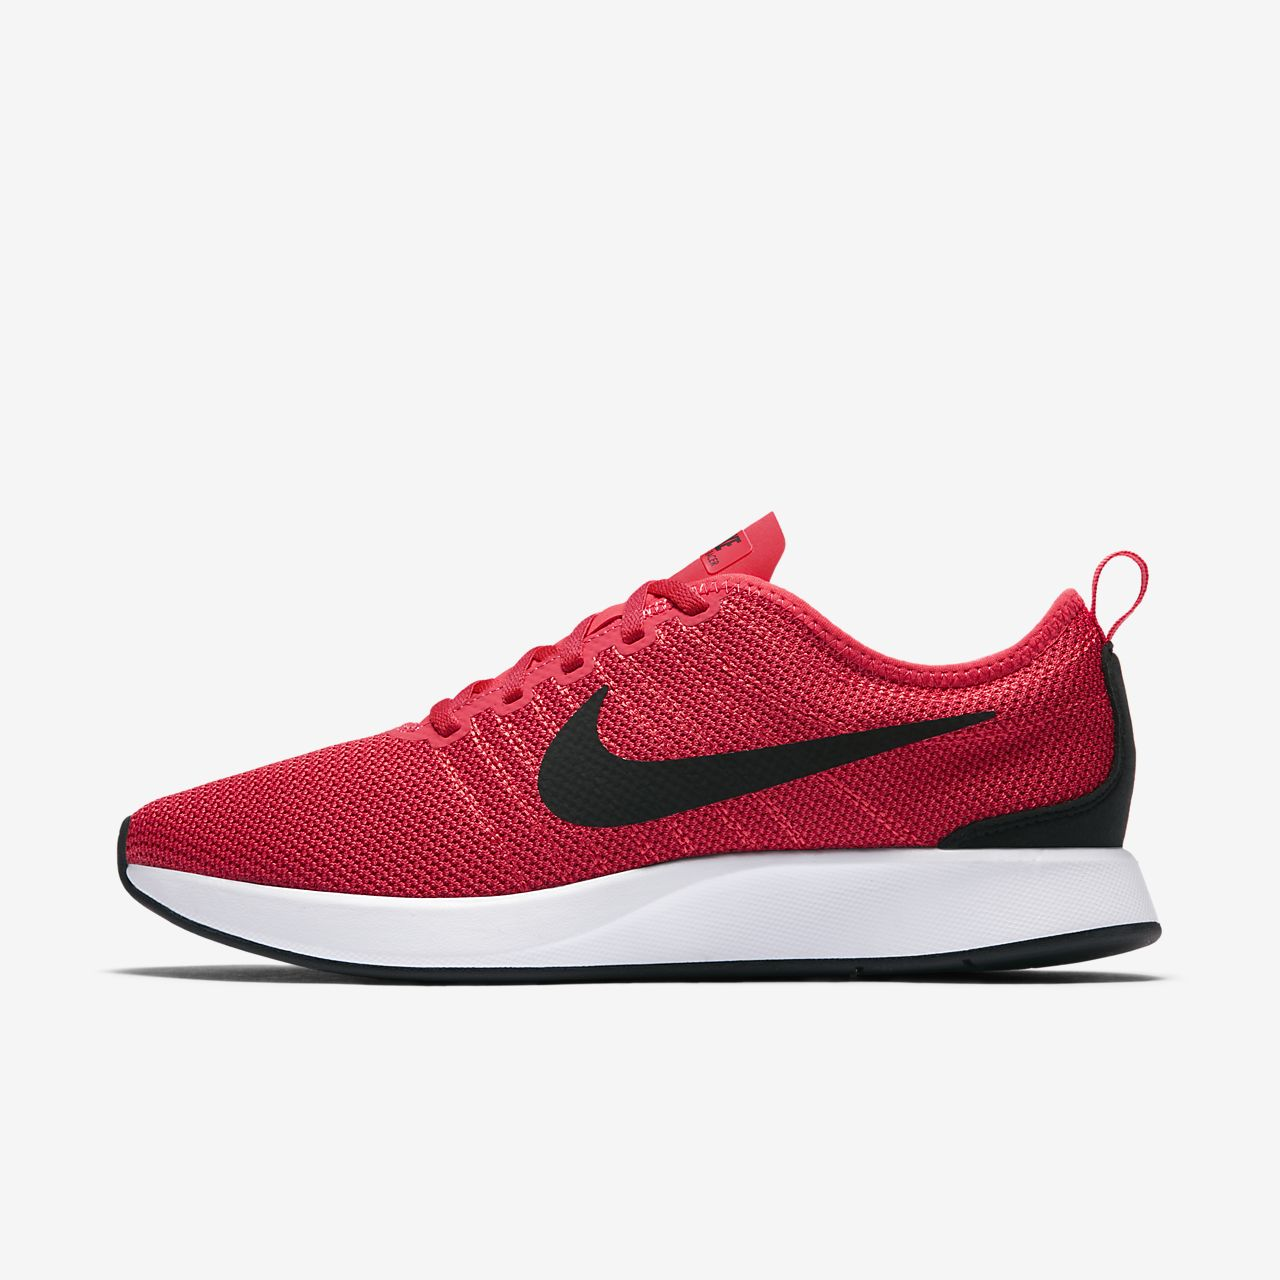 better info for high fashion Chaussure Nike Dualtone Racer pour Homme. Nike FR